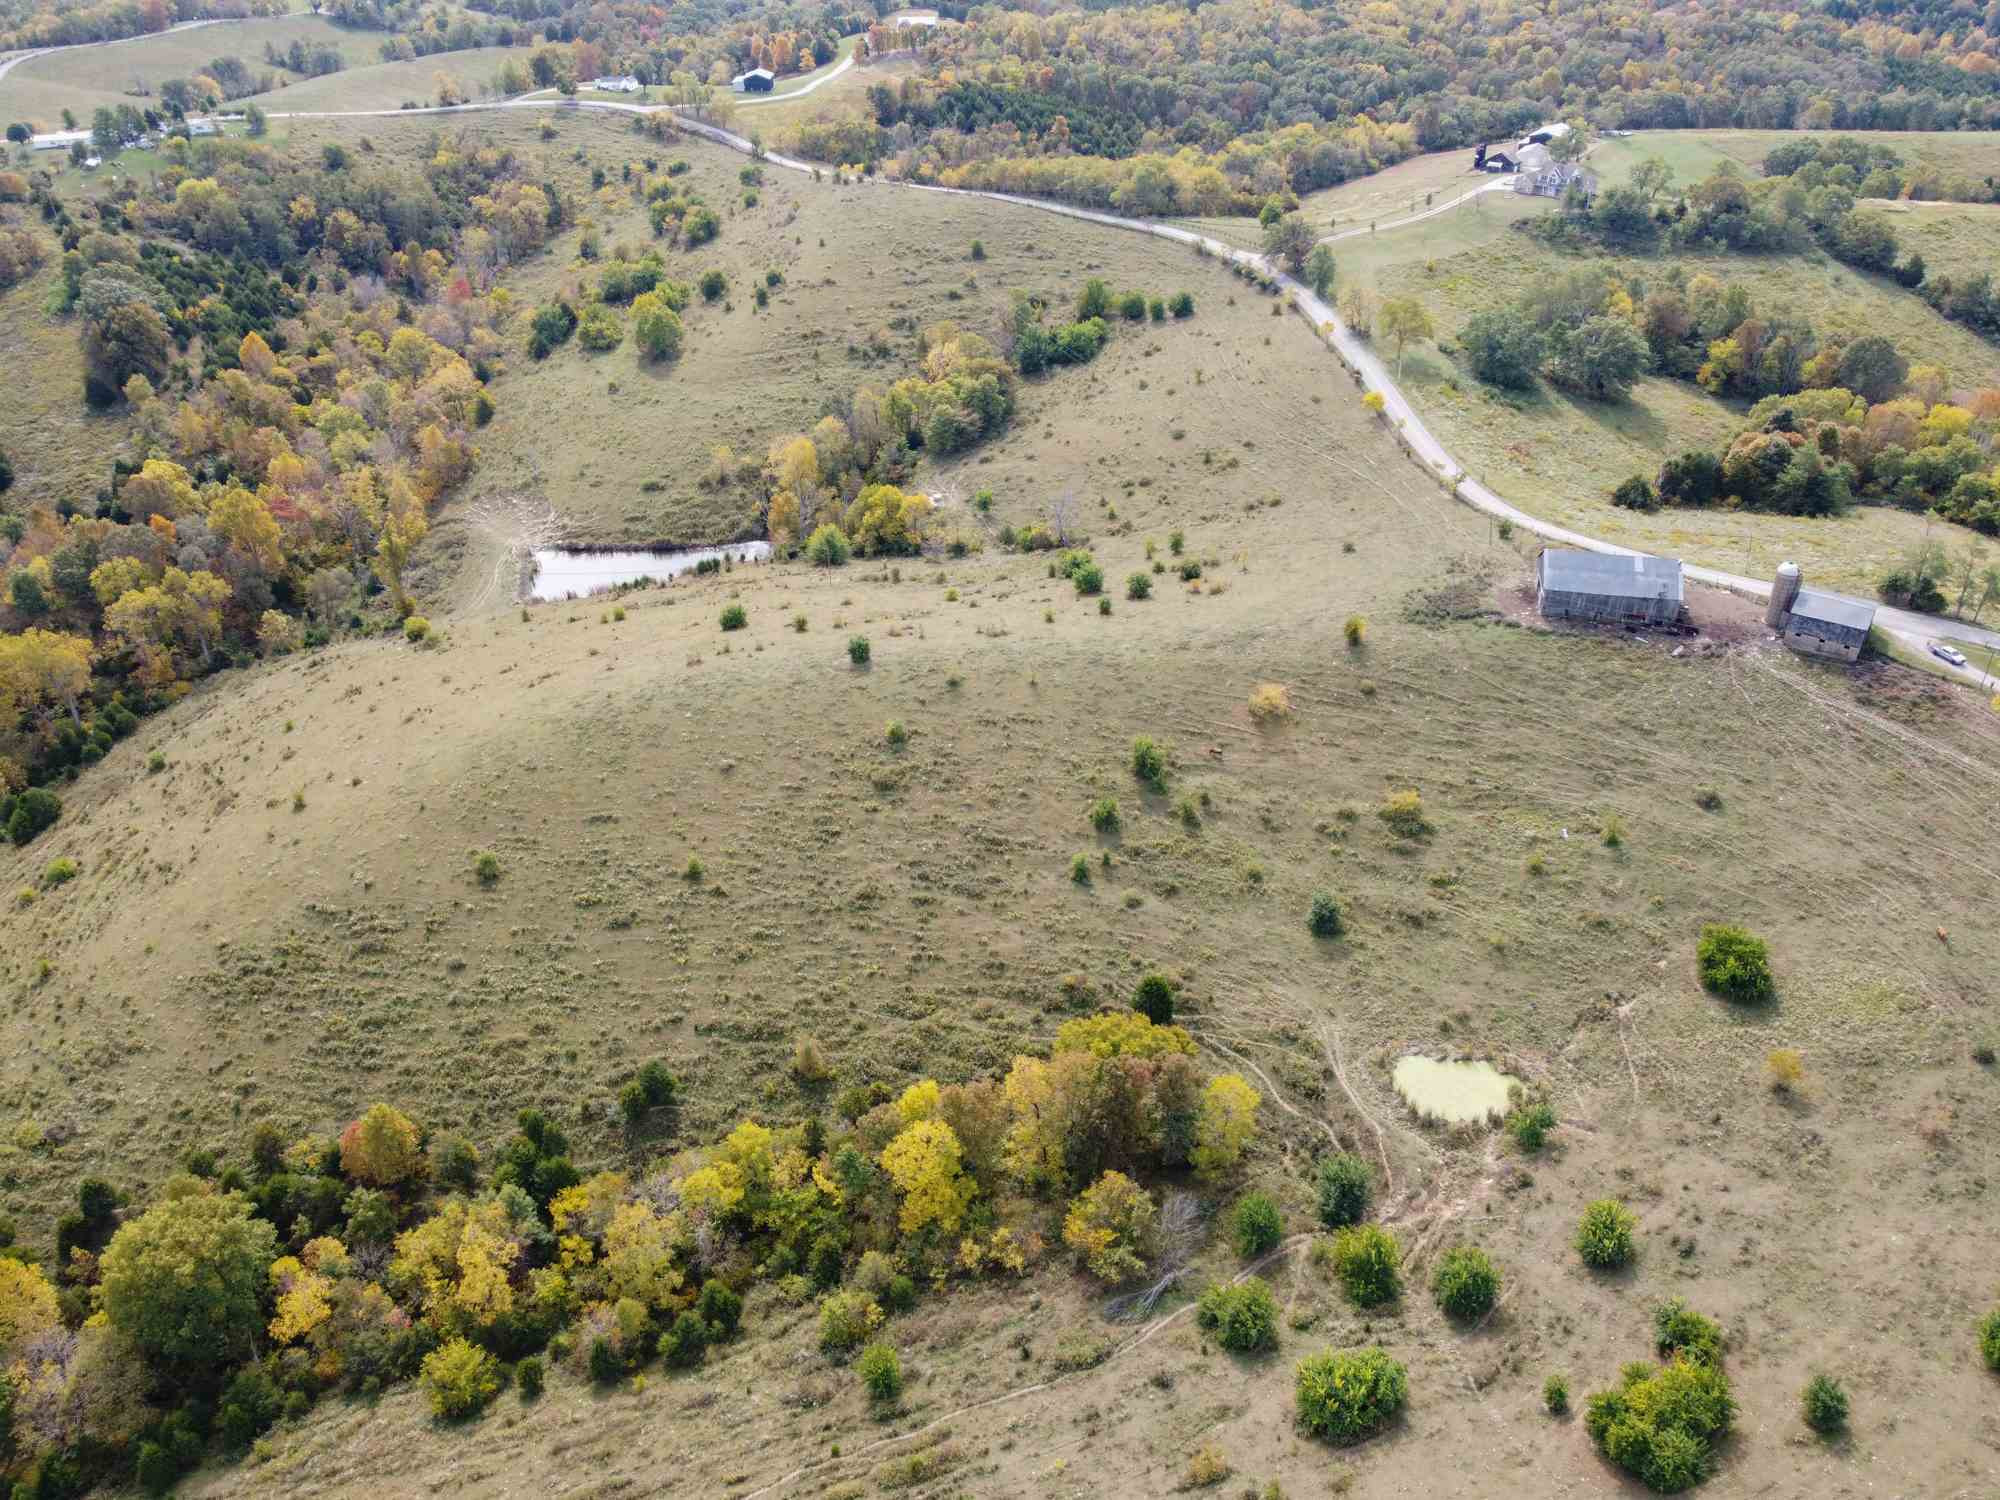 Photo 1 for 0 Keefer Road - 103 Acres Corinth, KY 41010